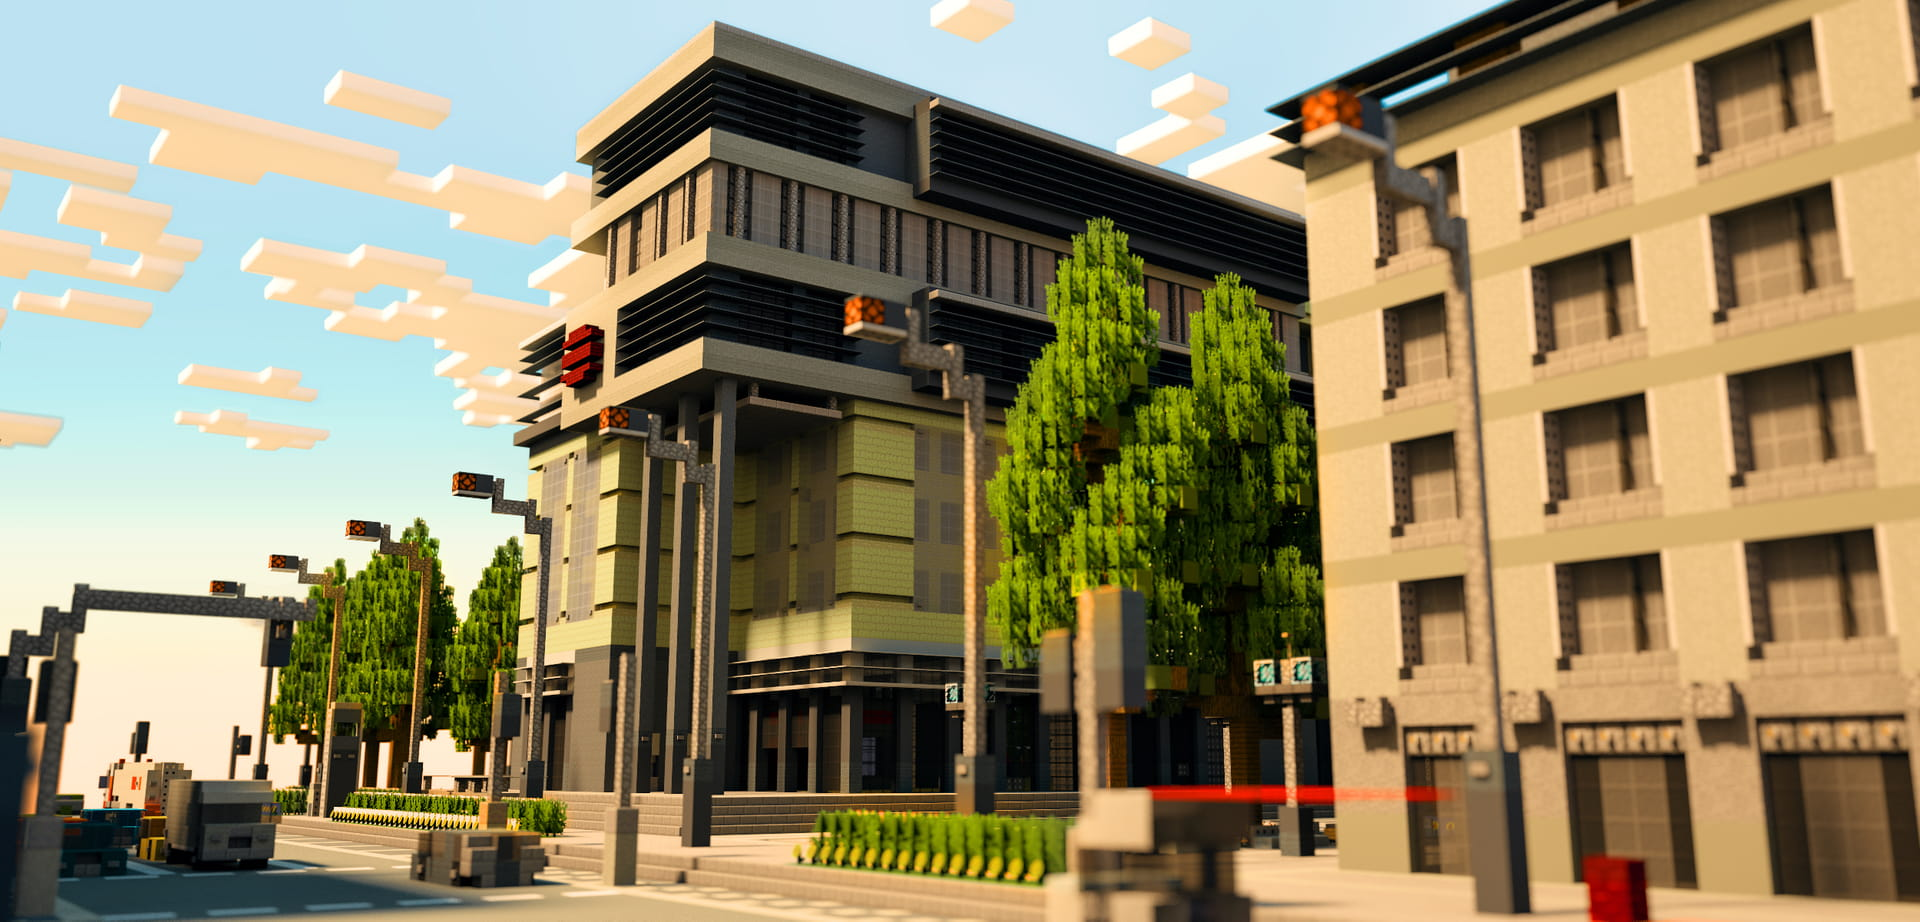 Minecraft Sparkasse Main Building